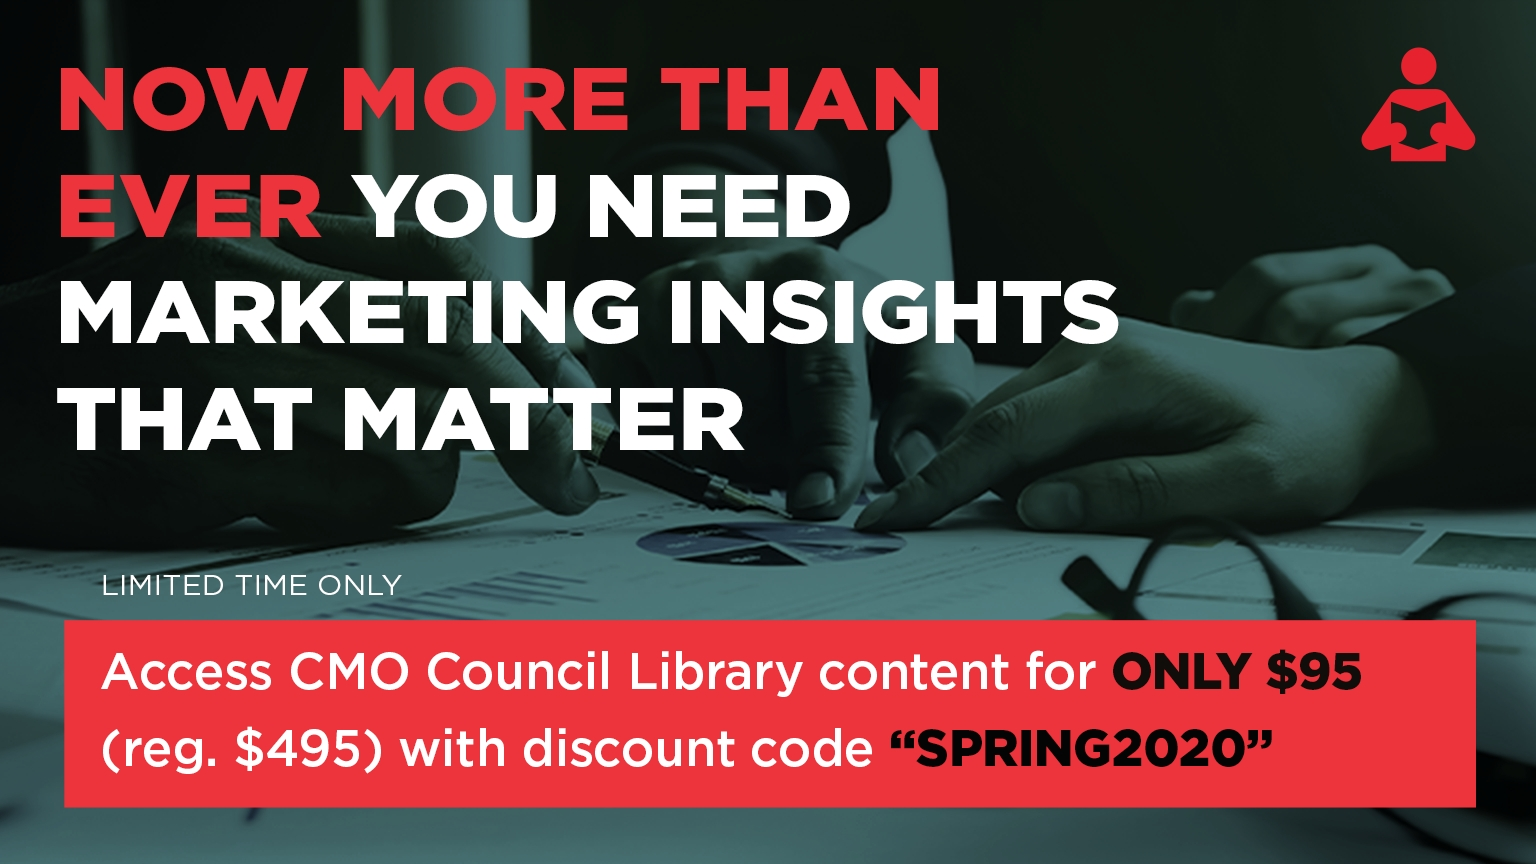 Access CMO Council Library for $95 with discount code SPRING2020